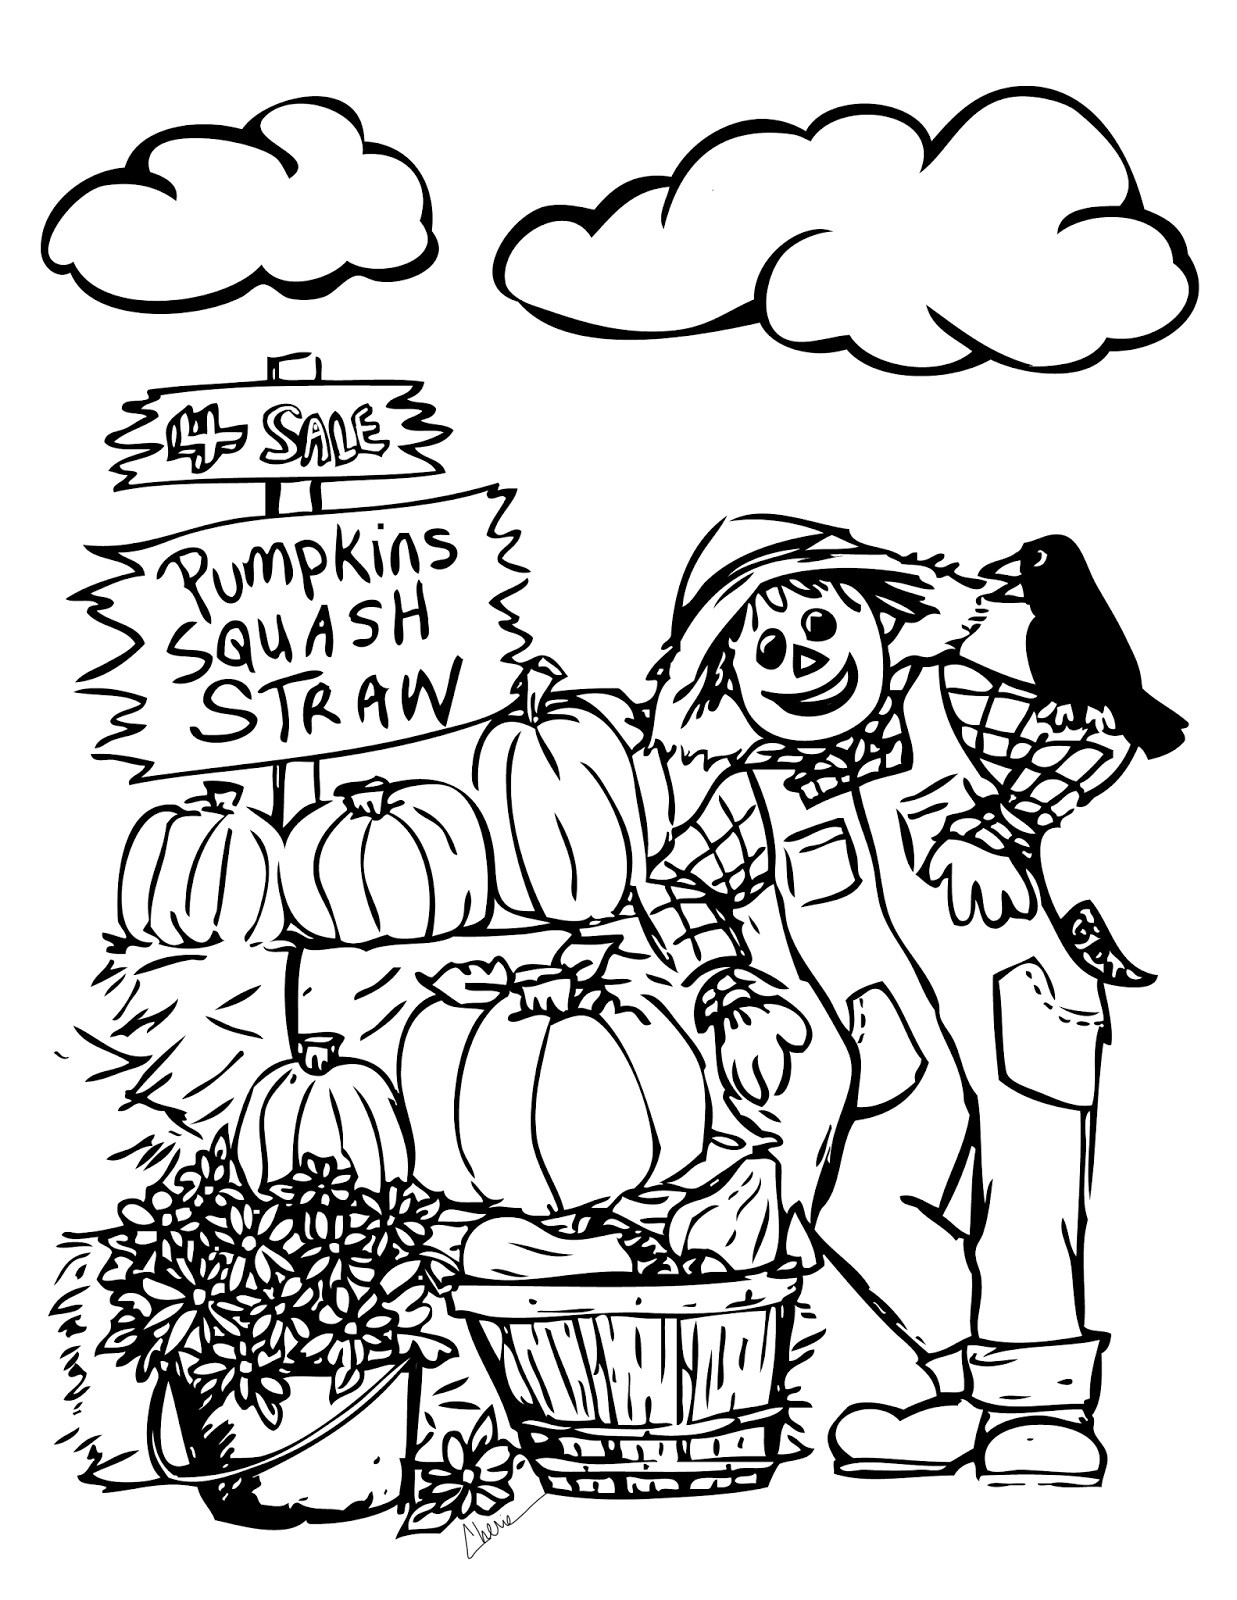 harvest coloring pictures harvest coloring pages best coloring pages for kids pictures harvest coloring